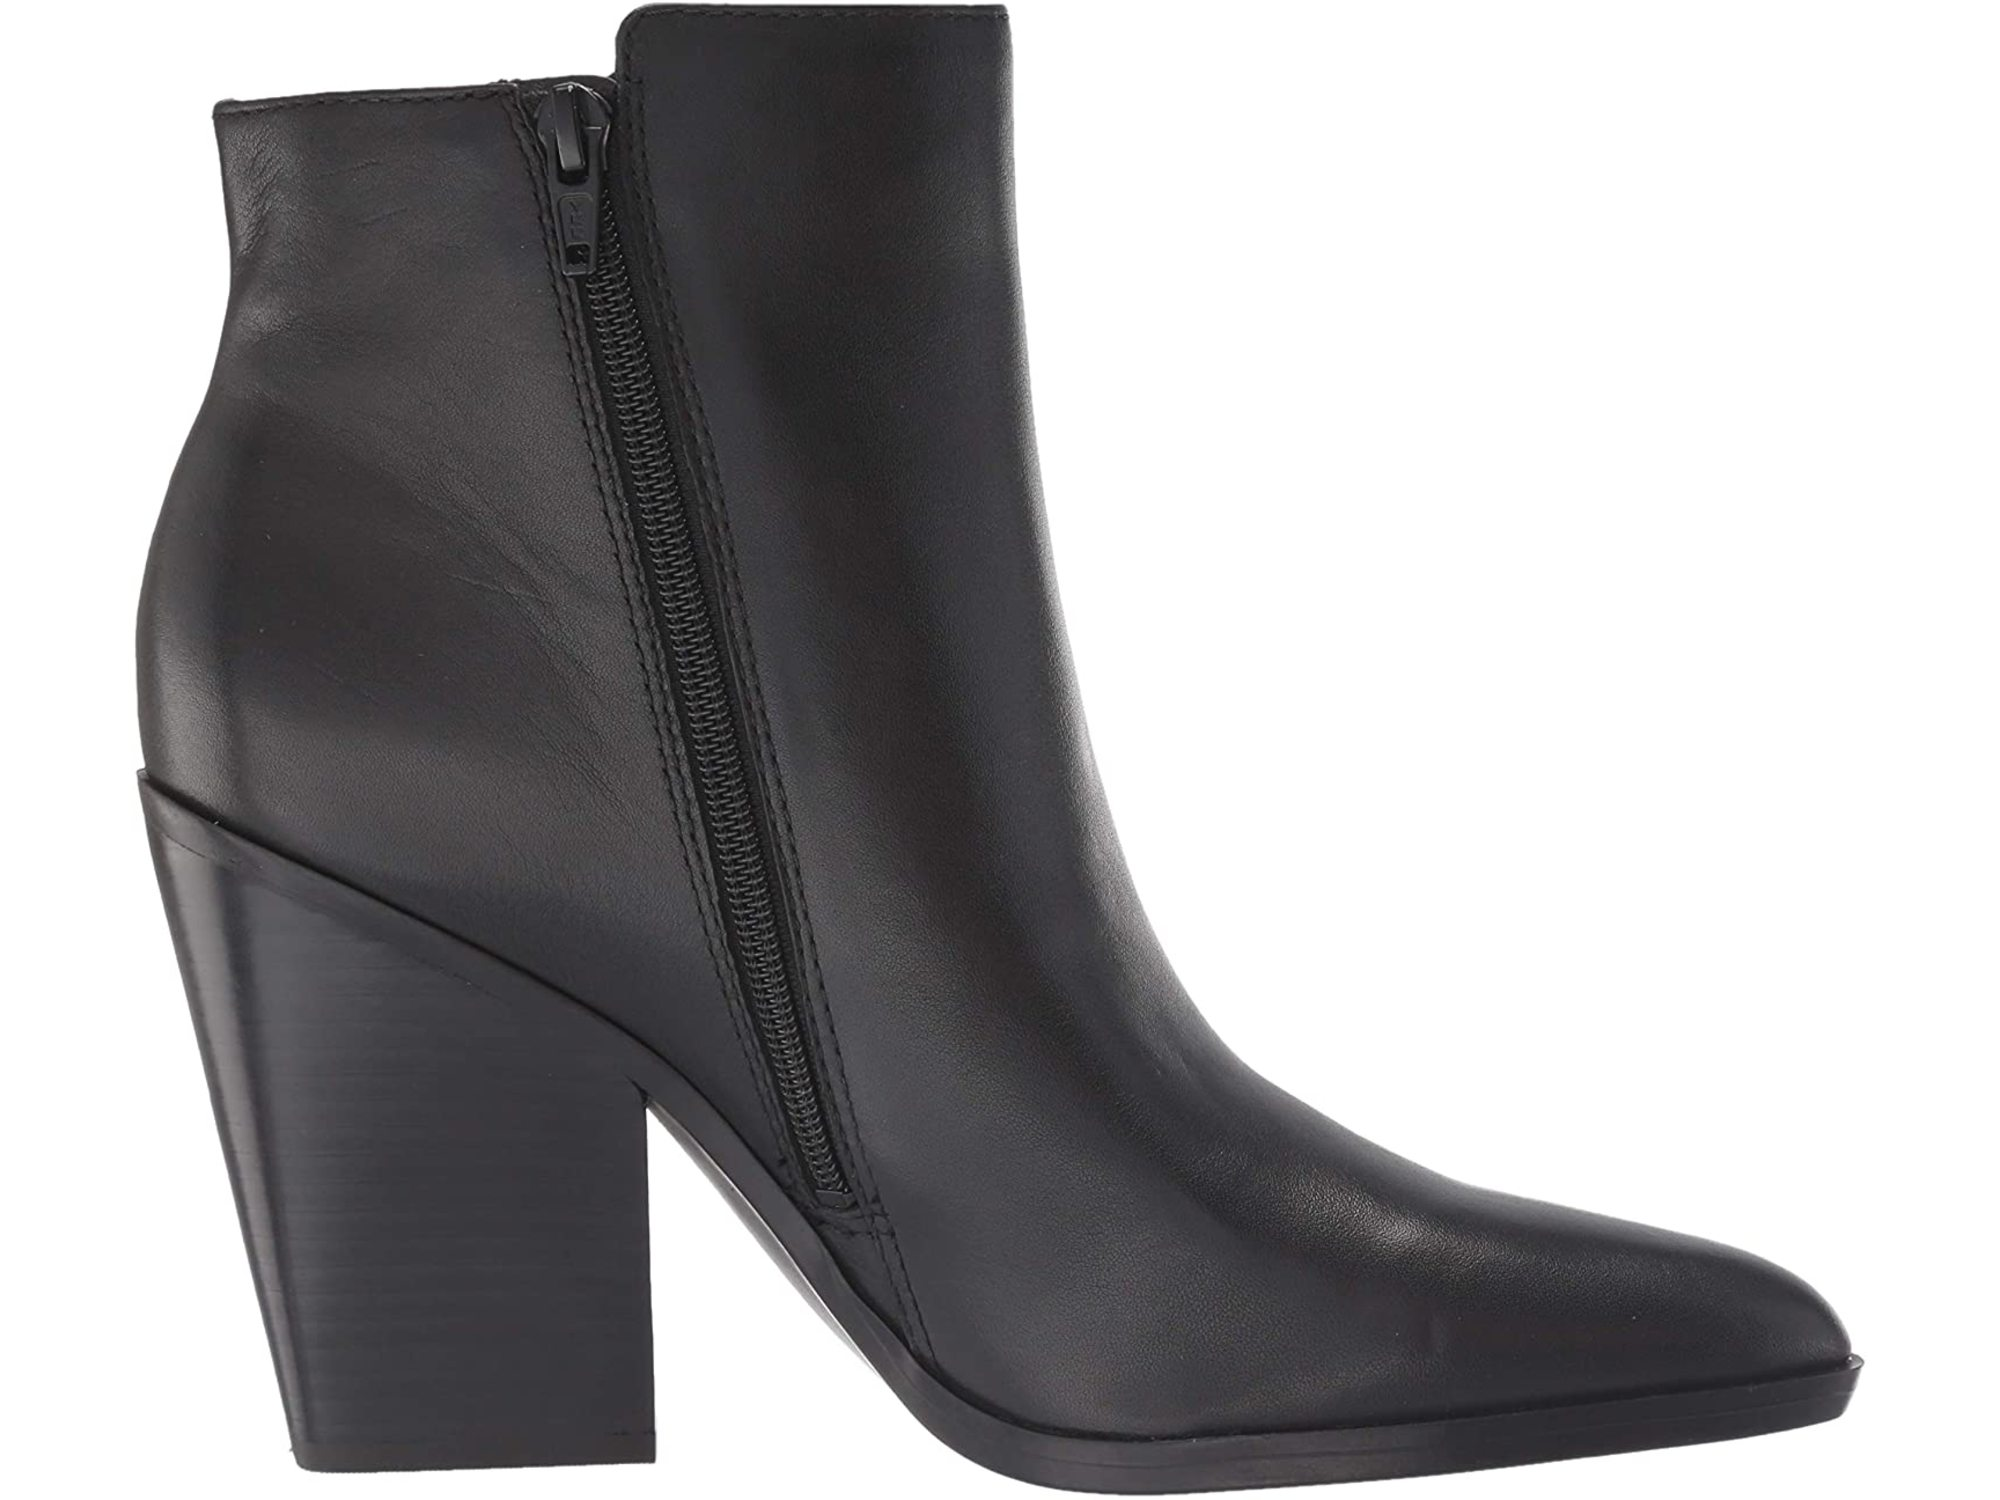 Details about  /Naturalizer Women/'s Shoes Rooney Leather Pointed Toe Ankle Fashion Boots